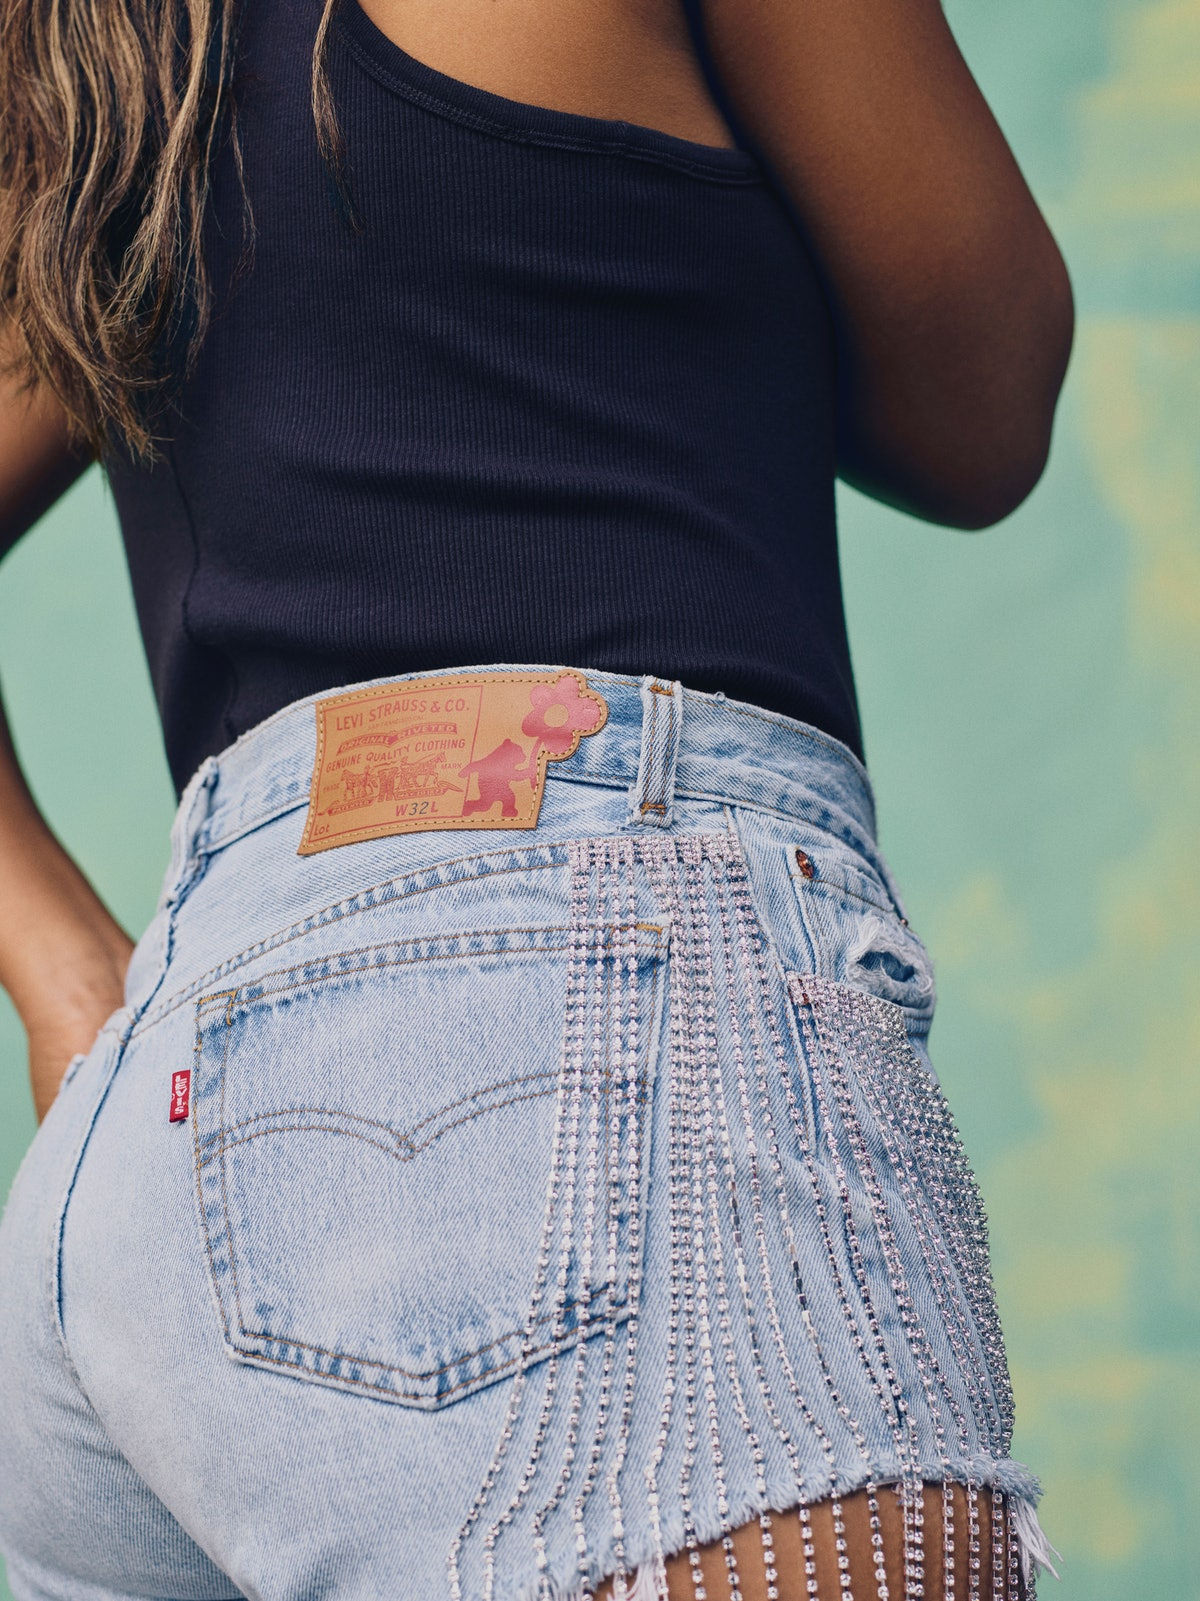 Tennis star Naomi Osaka wears crystal-embellished short denim shorts in the campaign for her Levi's ...